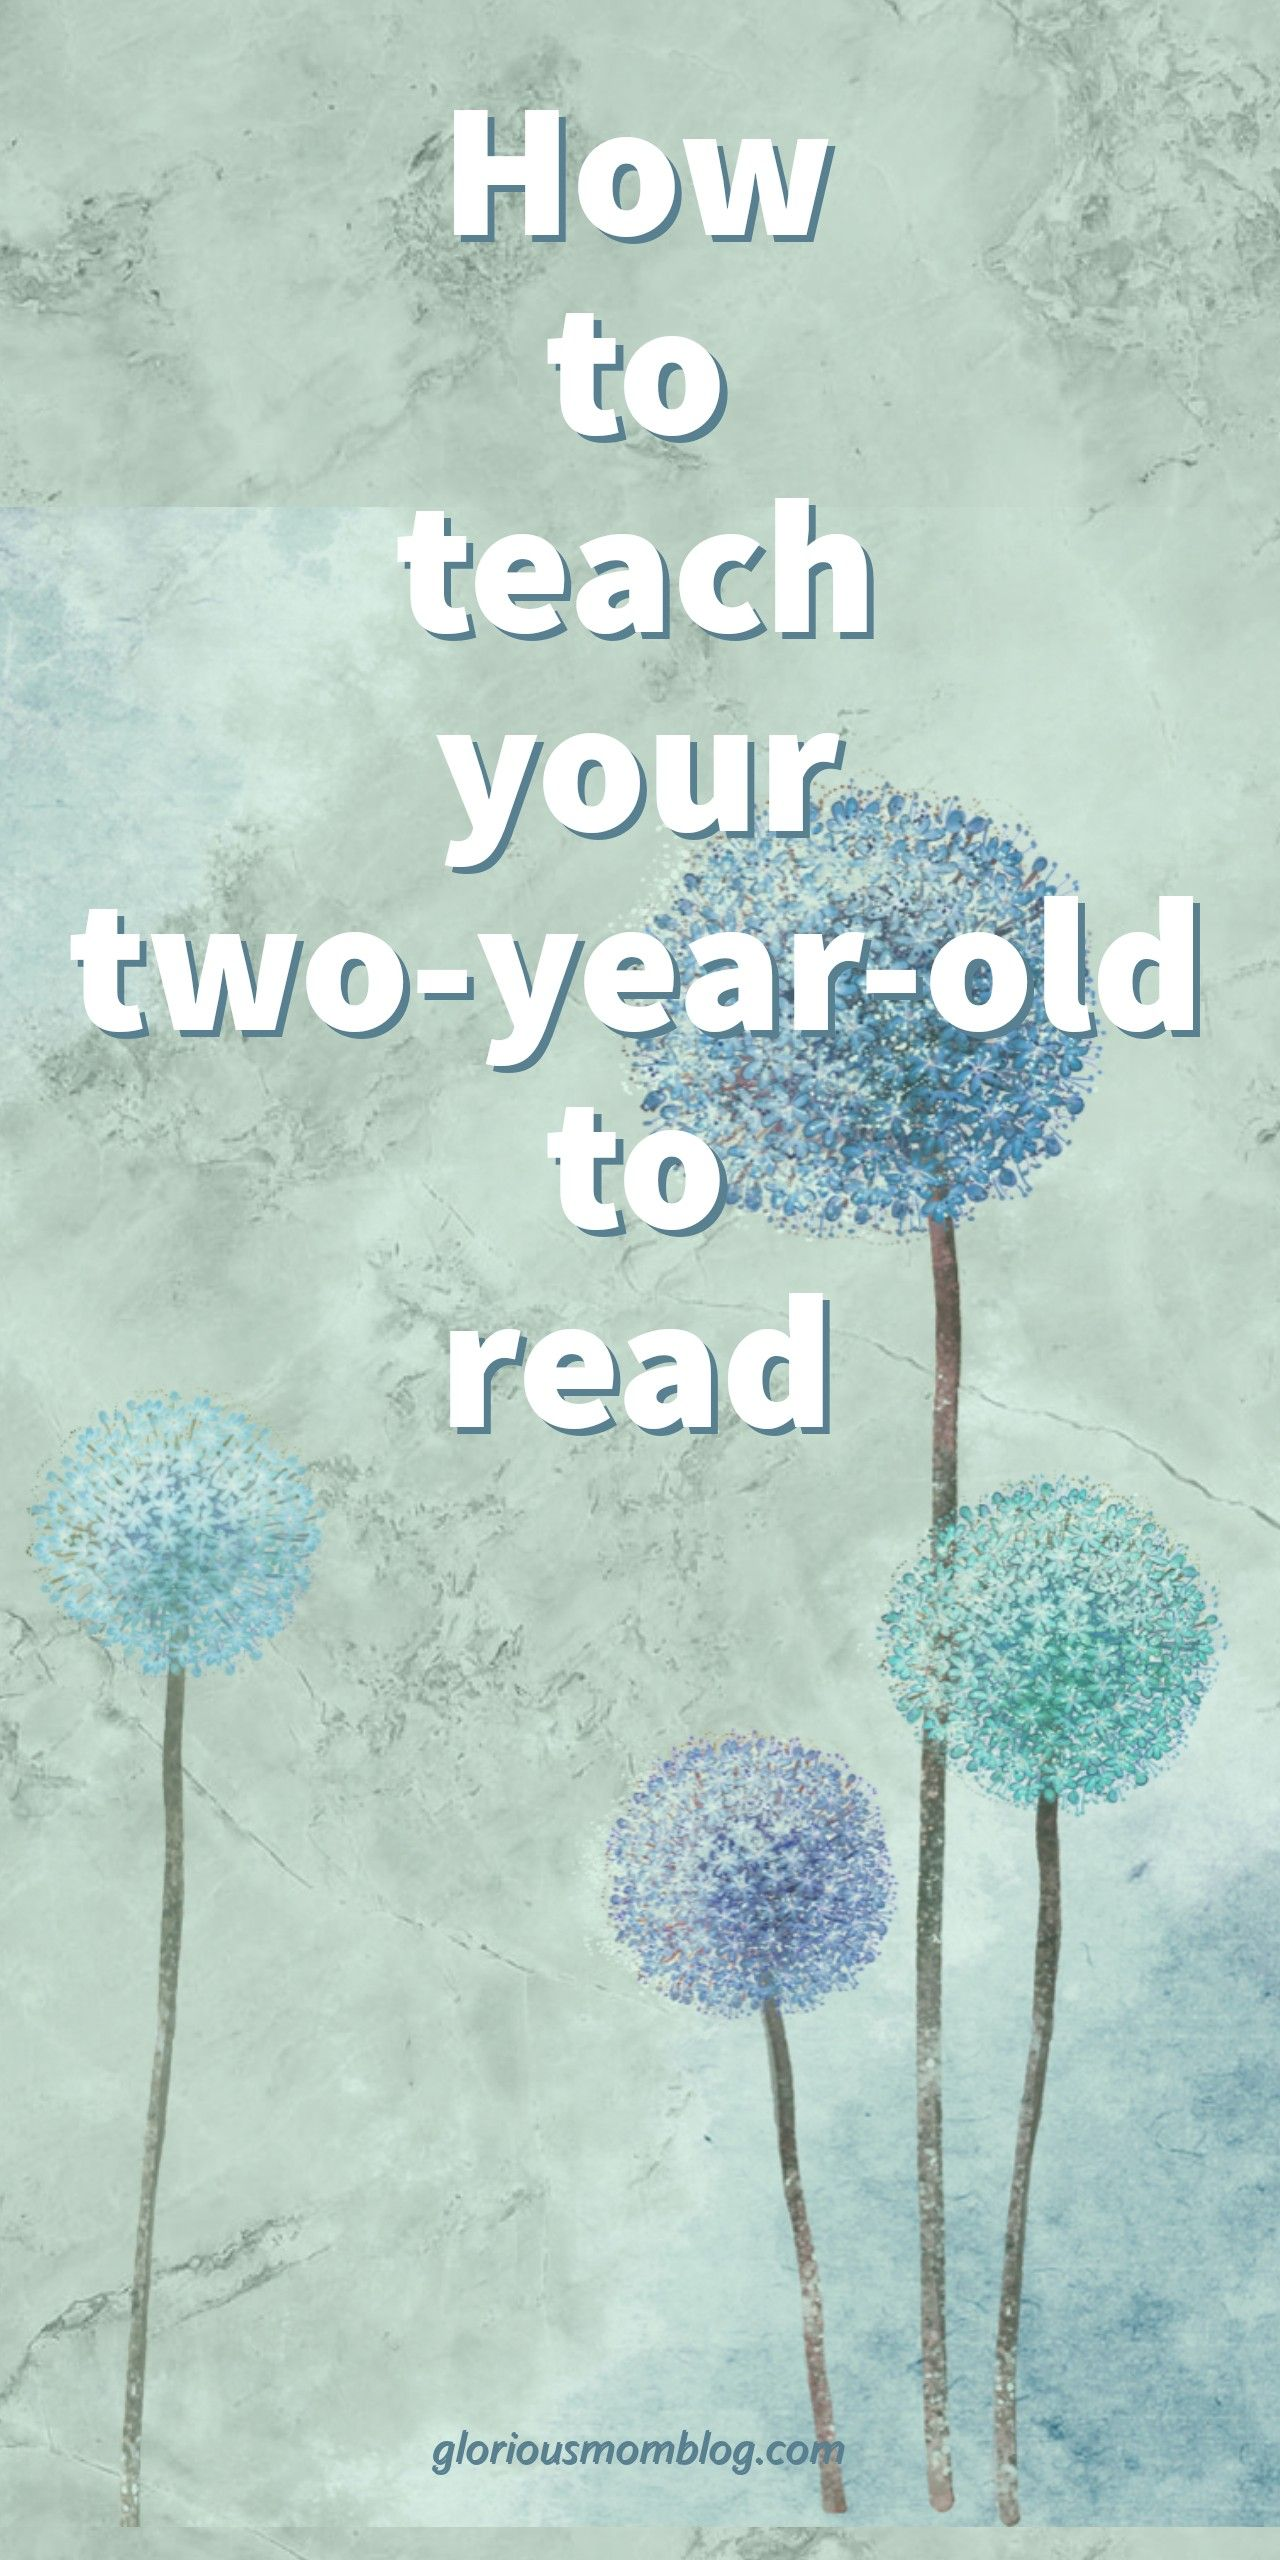 How To Teach Your Two Year Old To Read Teaching Books For Moms Teaching Kids How can i help my year old read